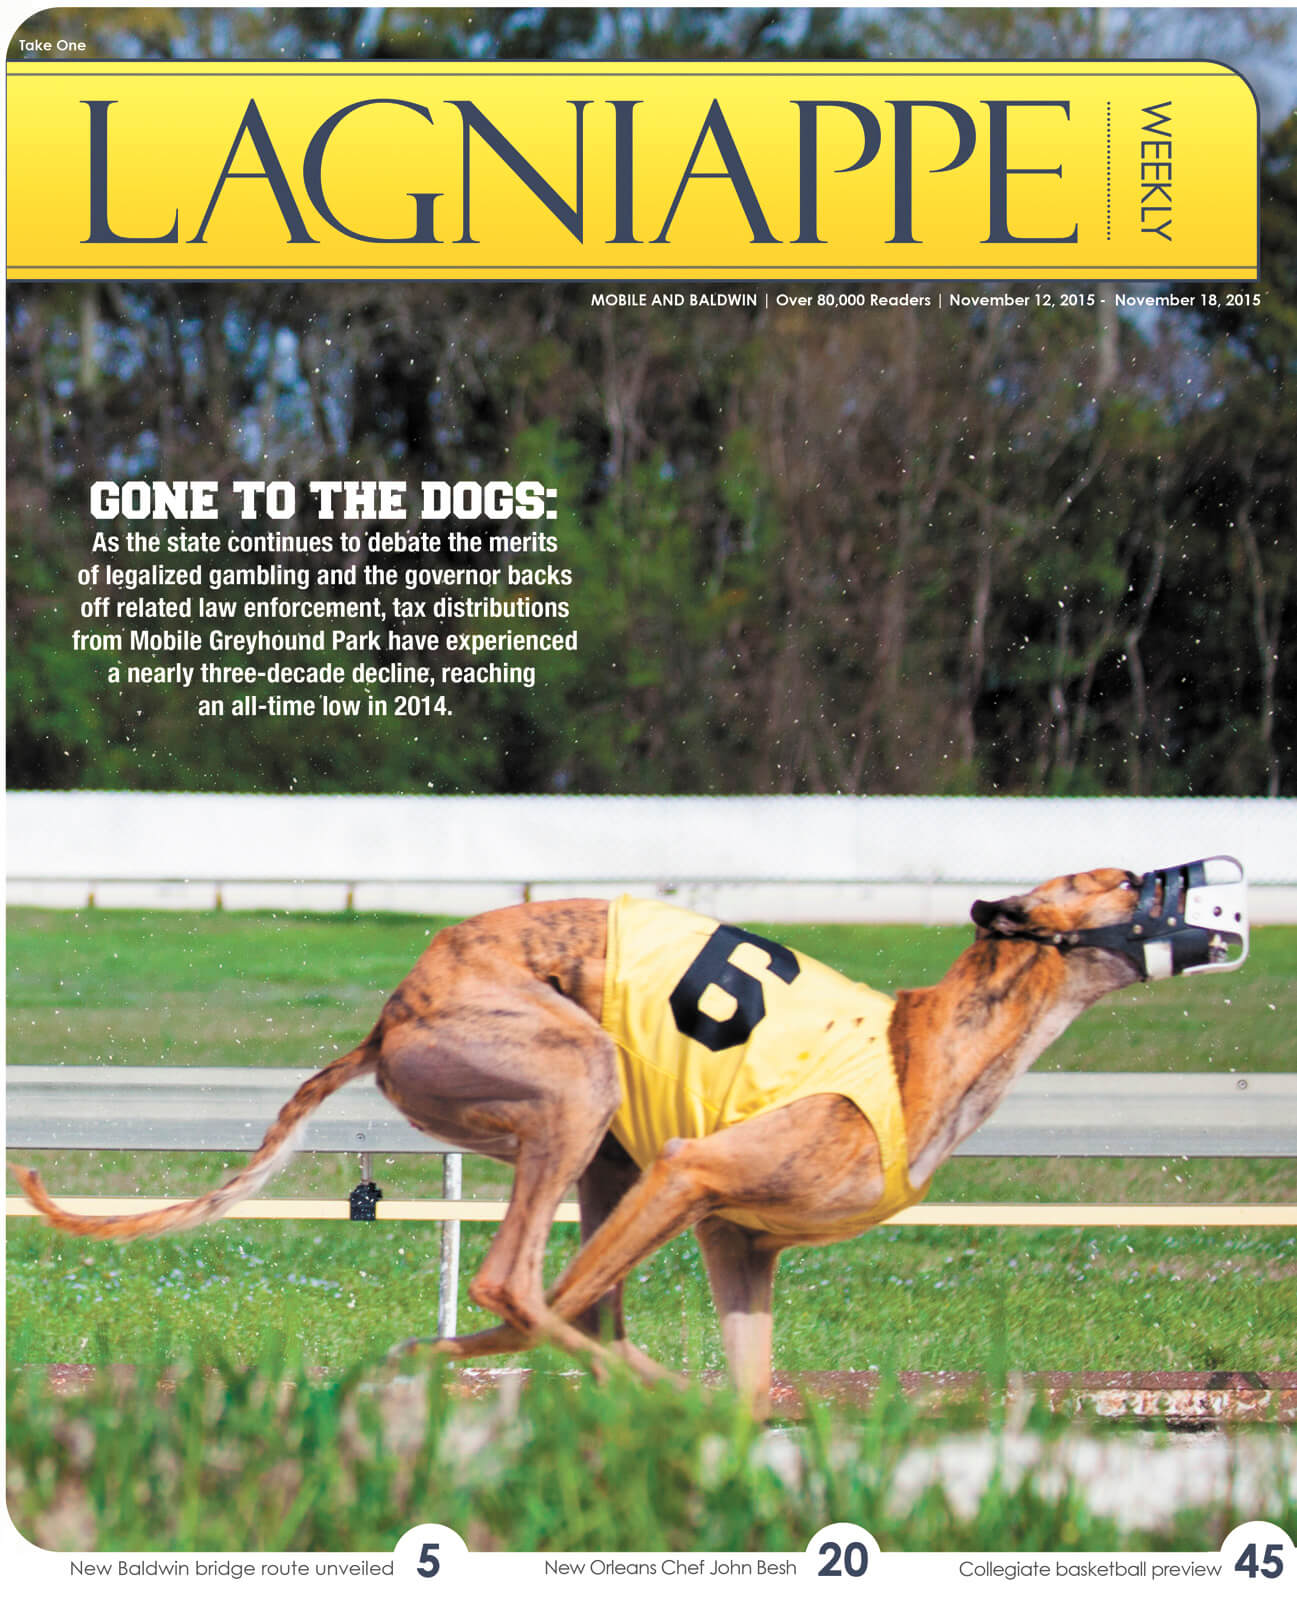 COVER STORY: Racing commission's tax disbursements hit all-time low